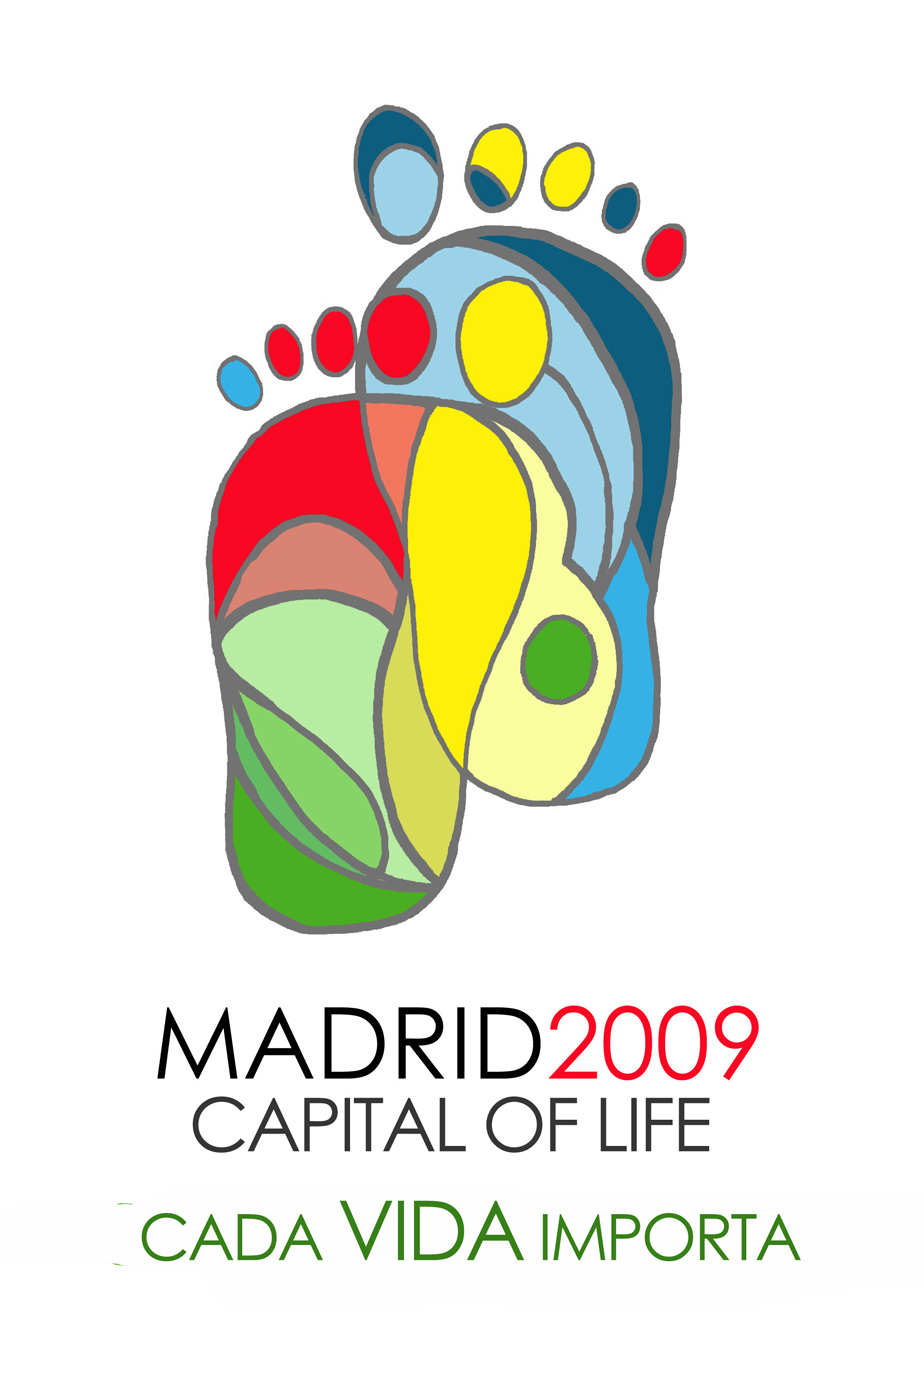 MADRID2009: CAPITAL OF LIFE